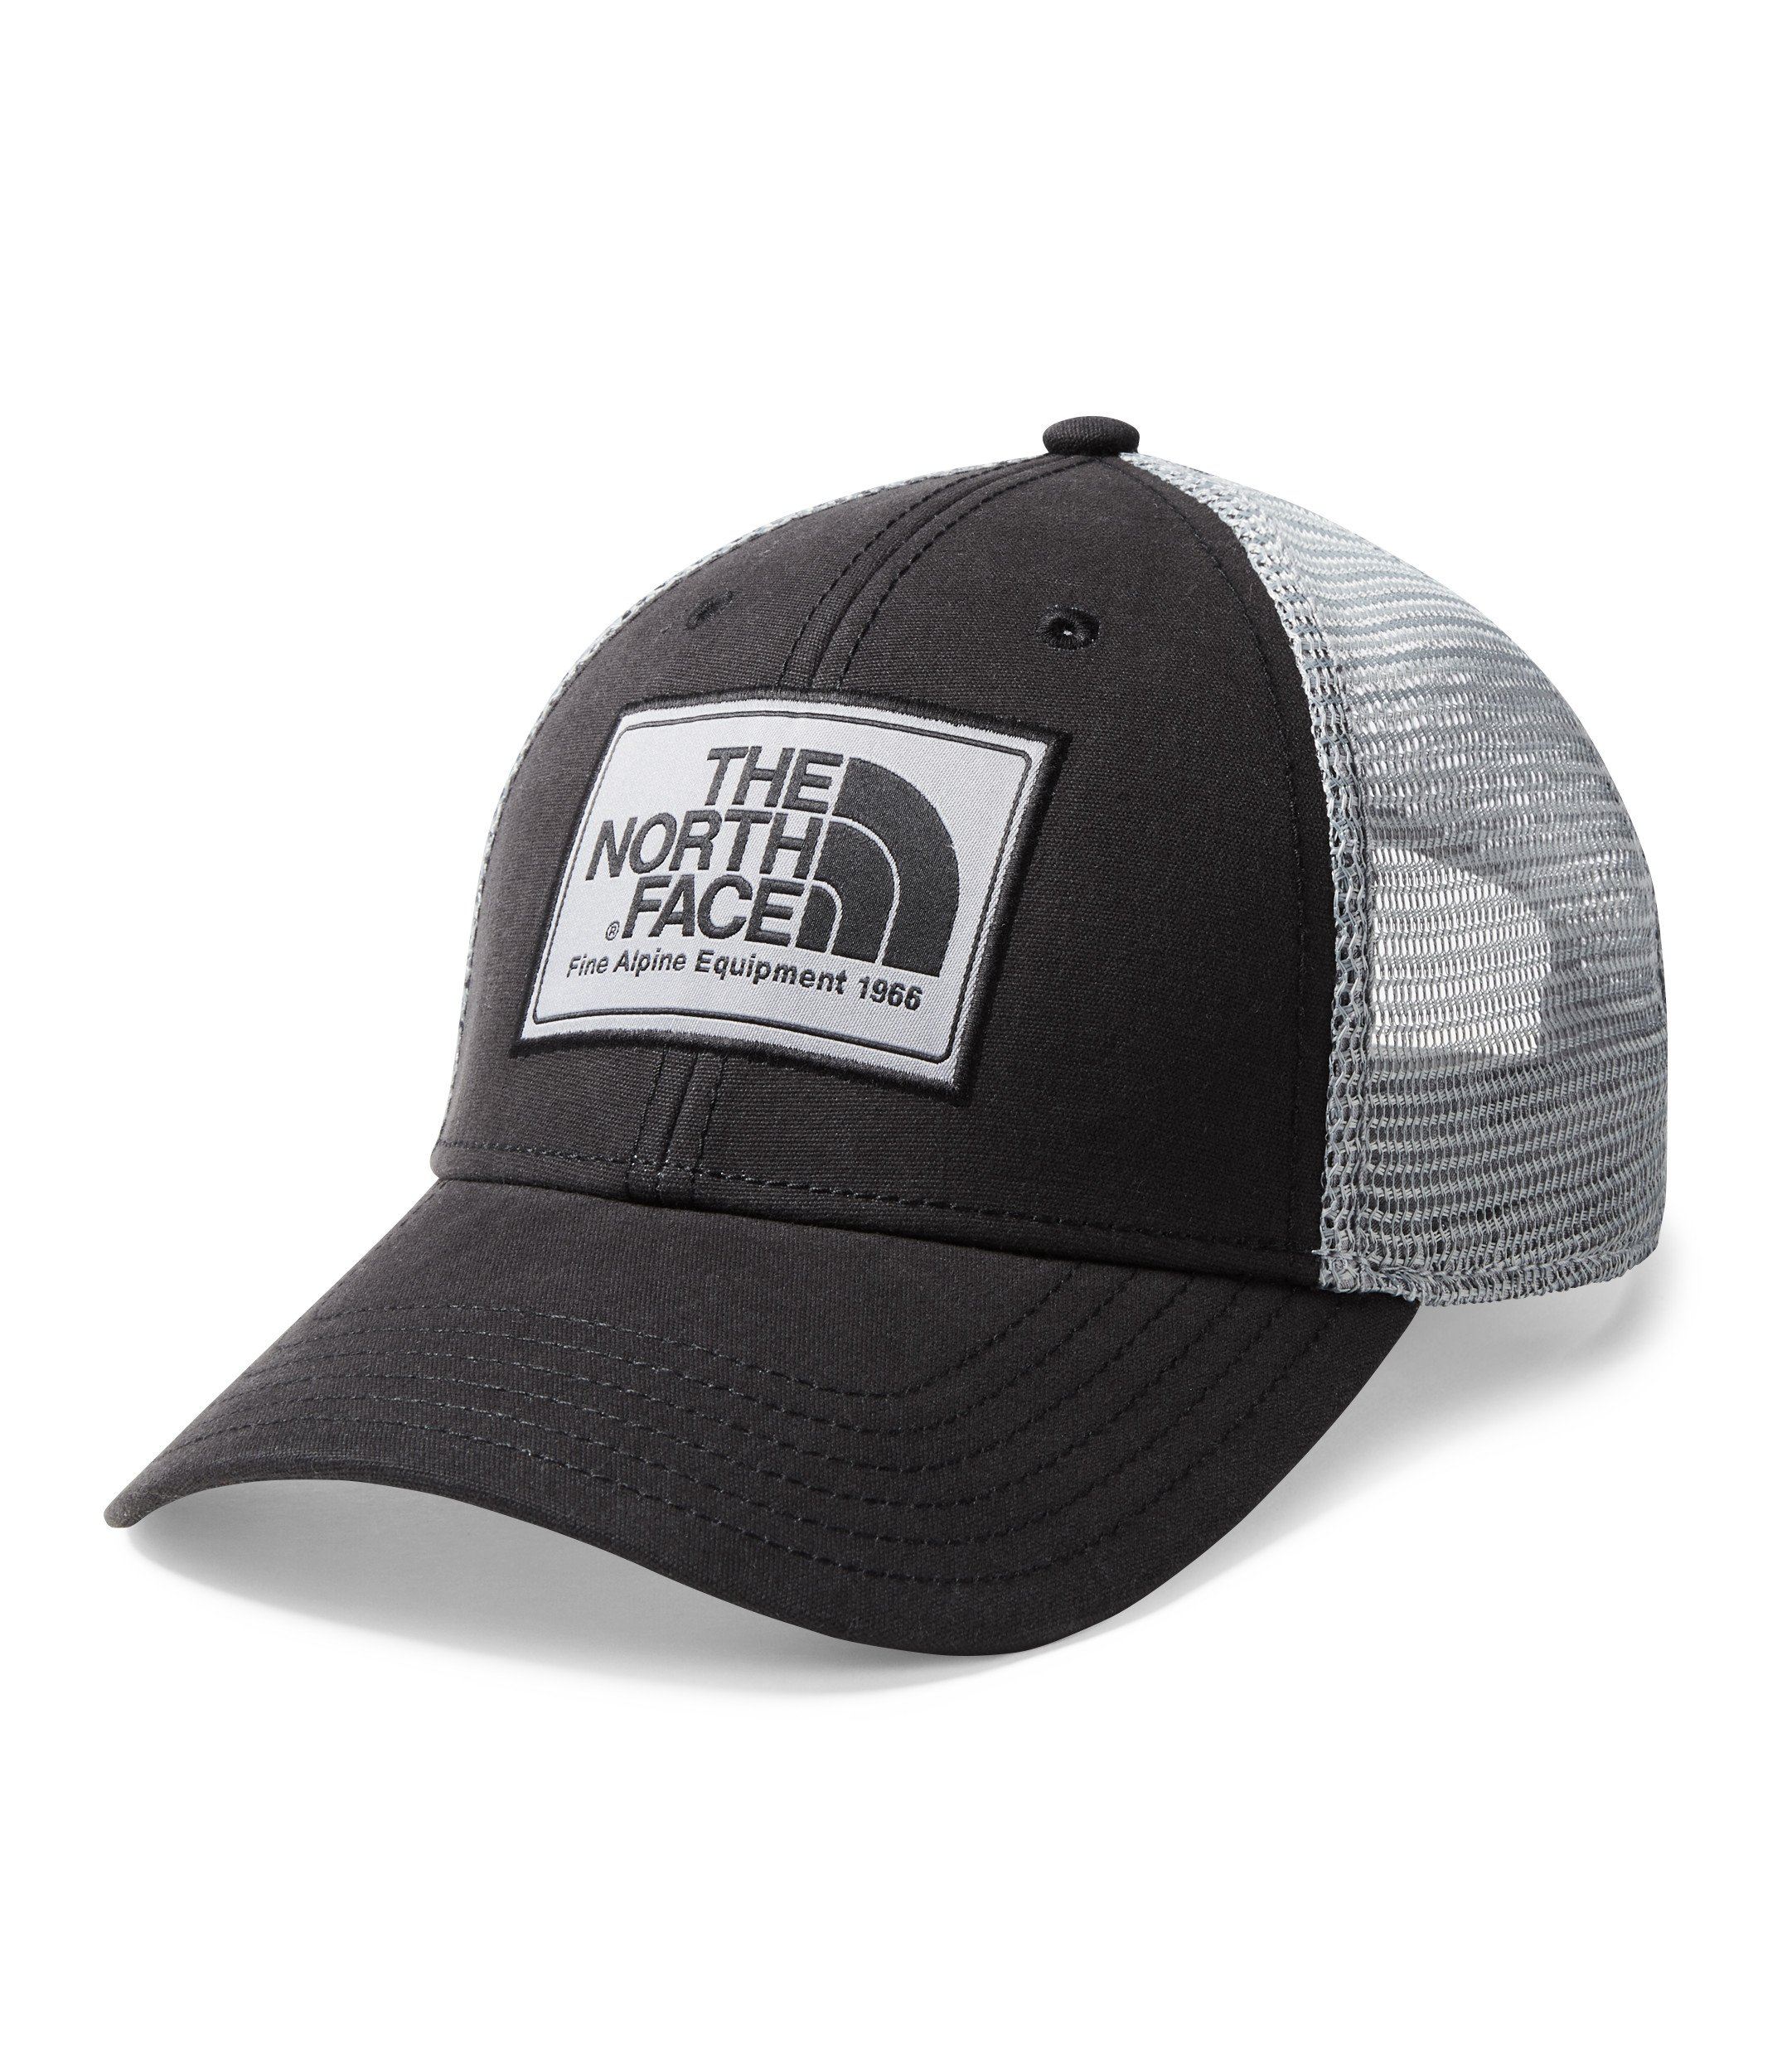 The North Face Mudder Trucker Hat - TNF Black & Mid Grey - OS